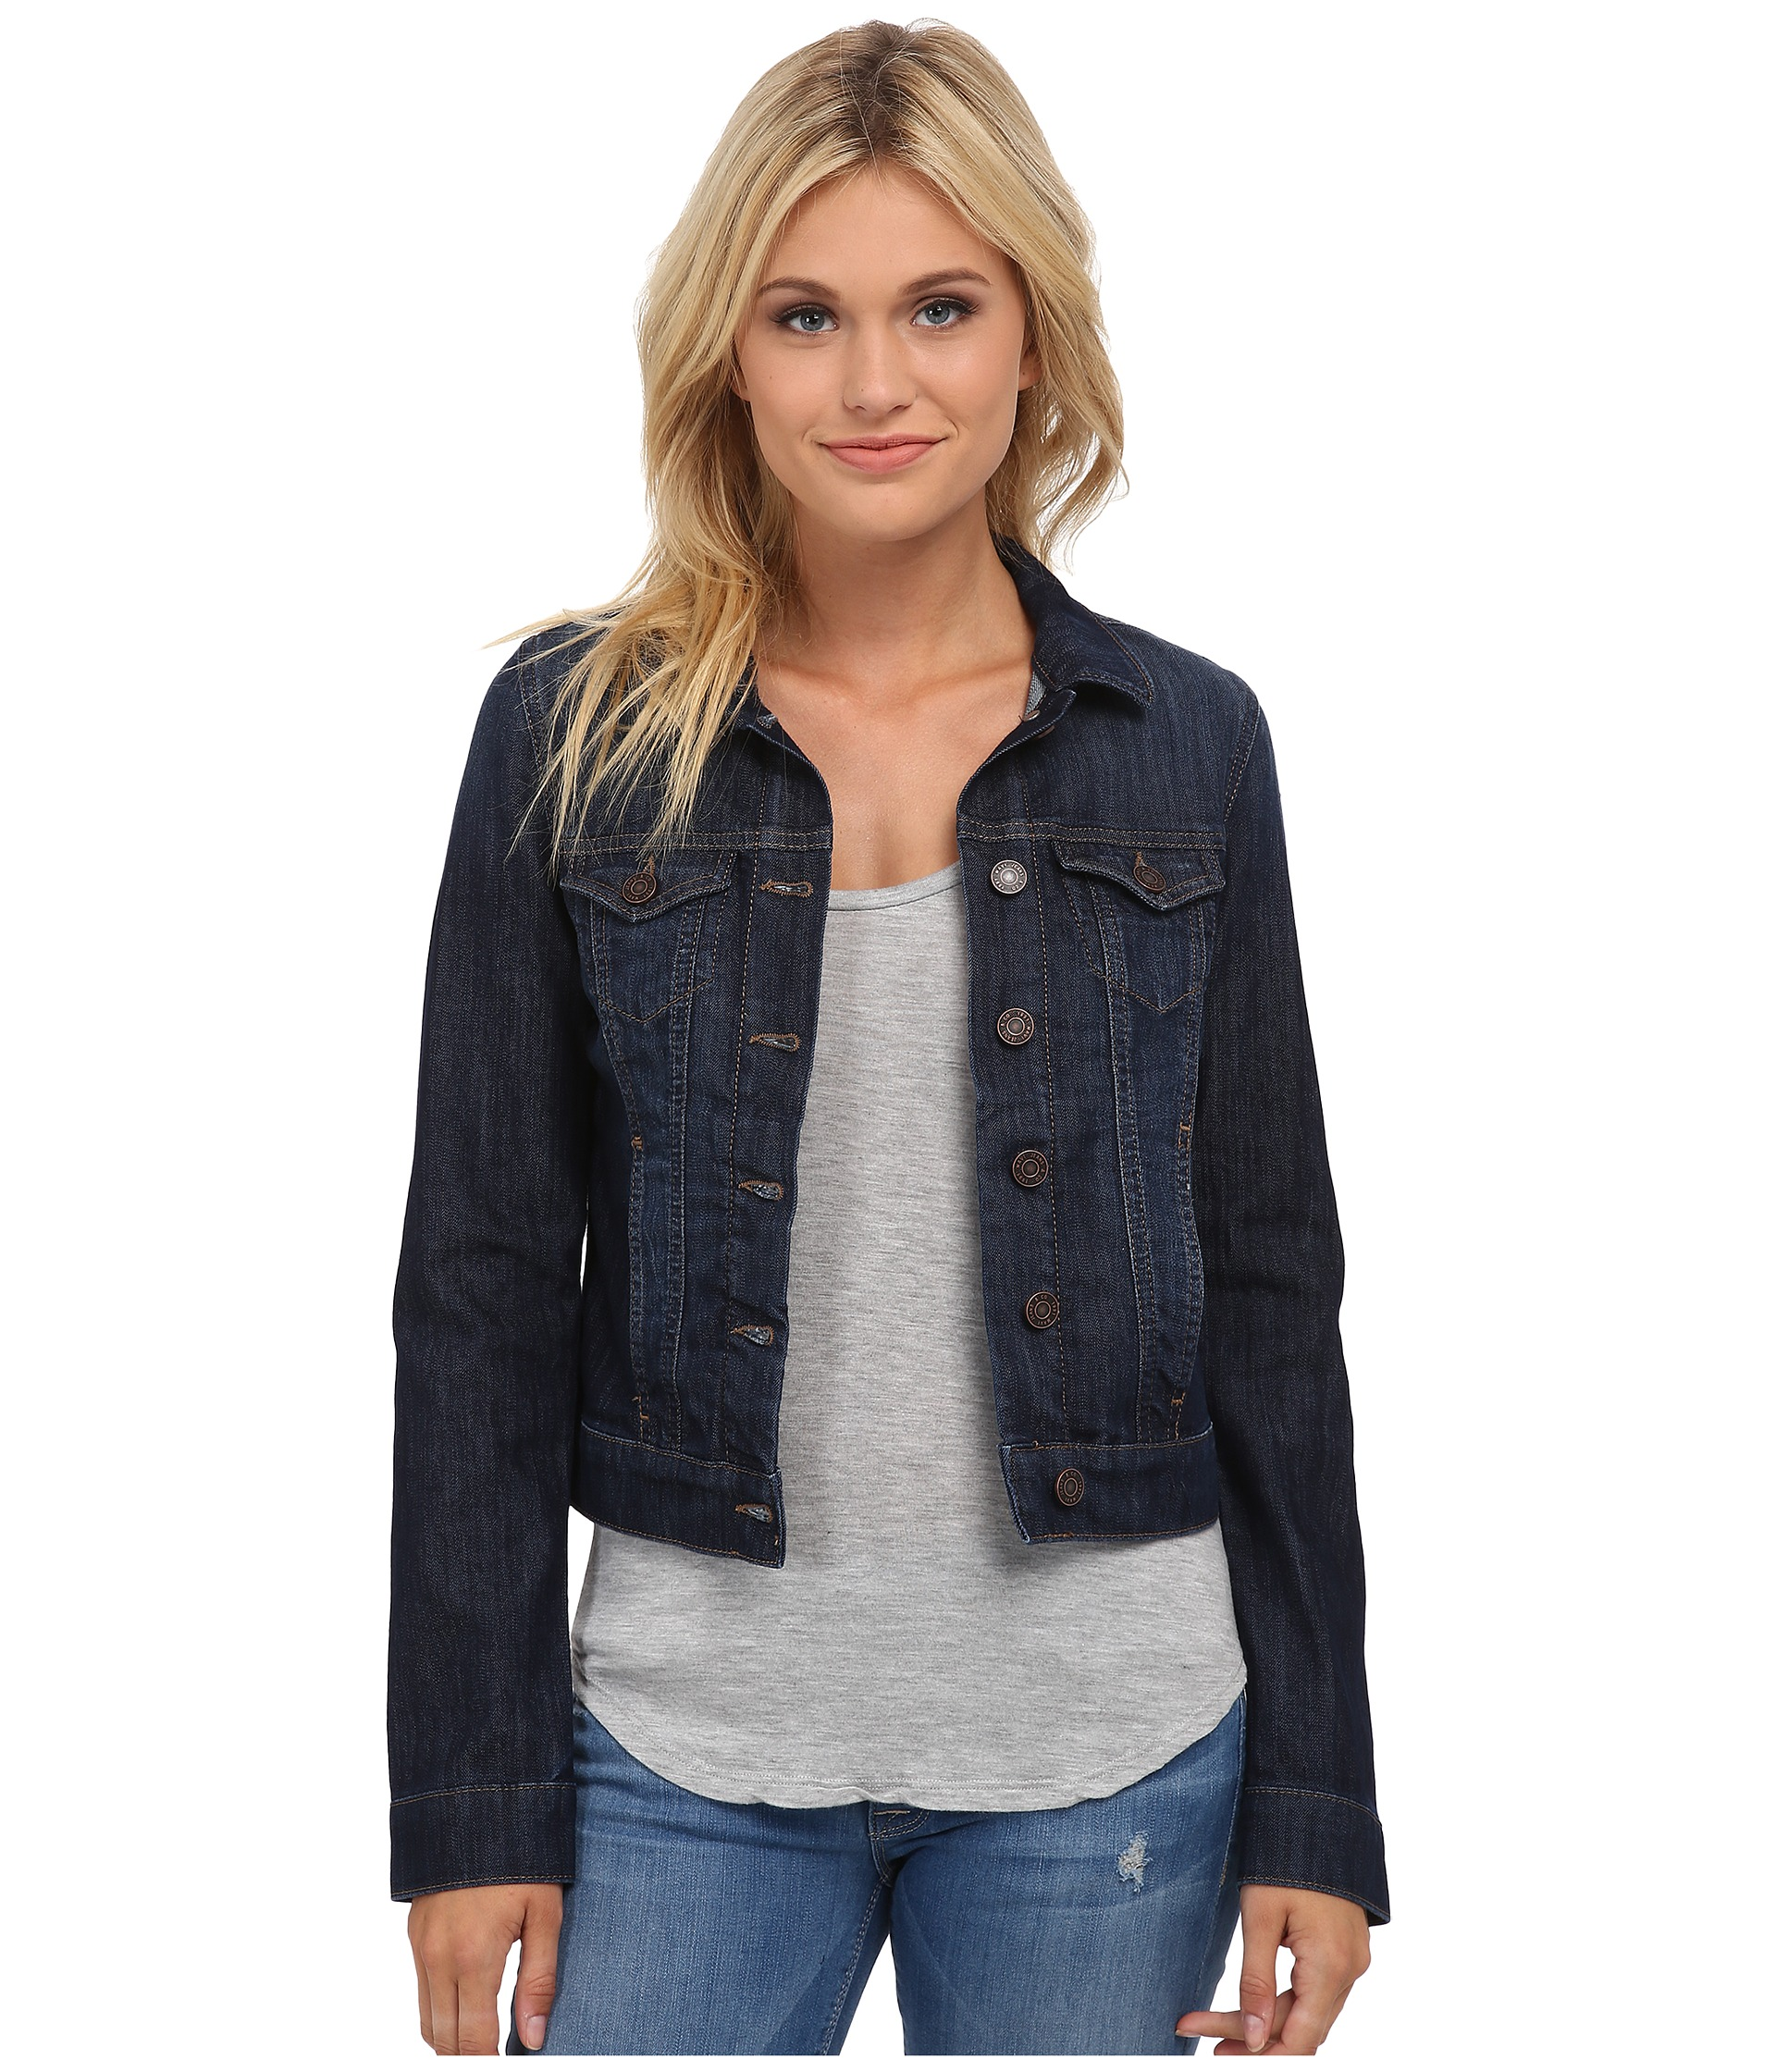 Cropped Jacket Clothing | Shipped Free at Zappos